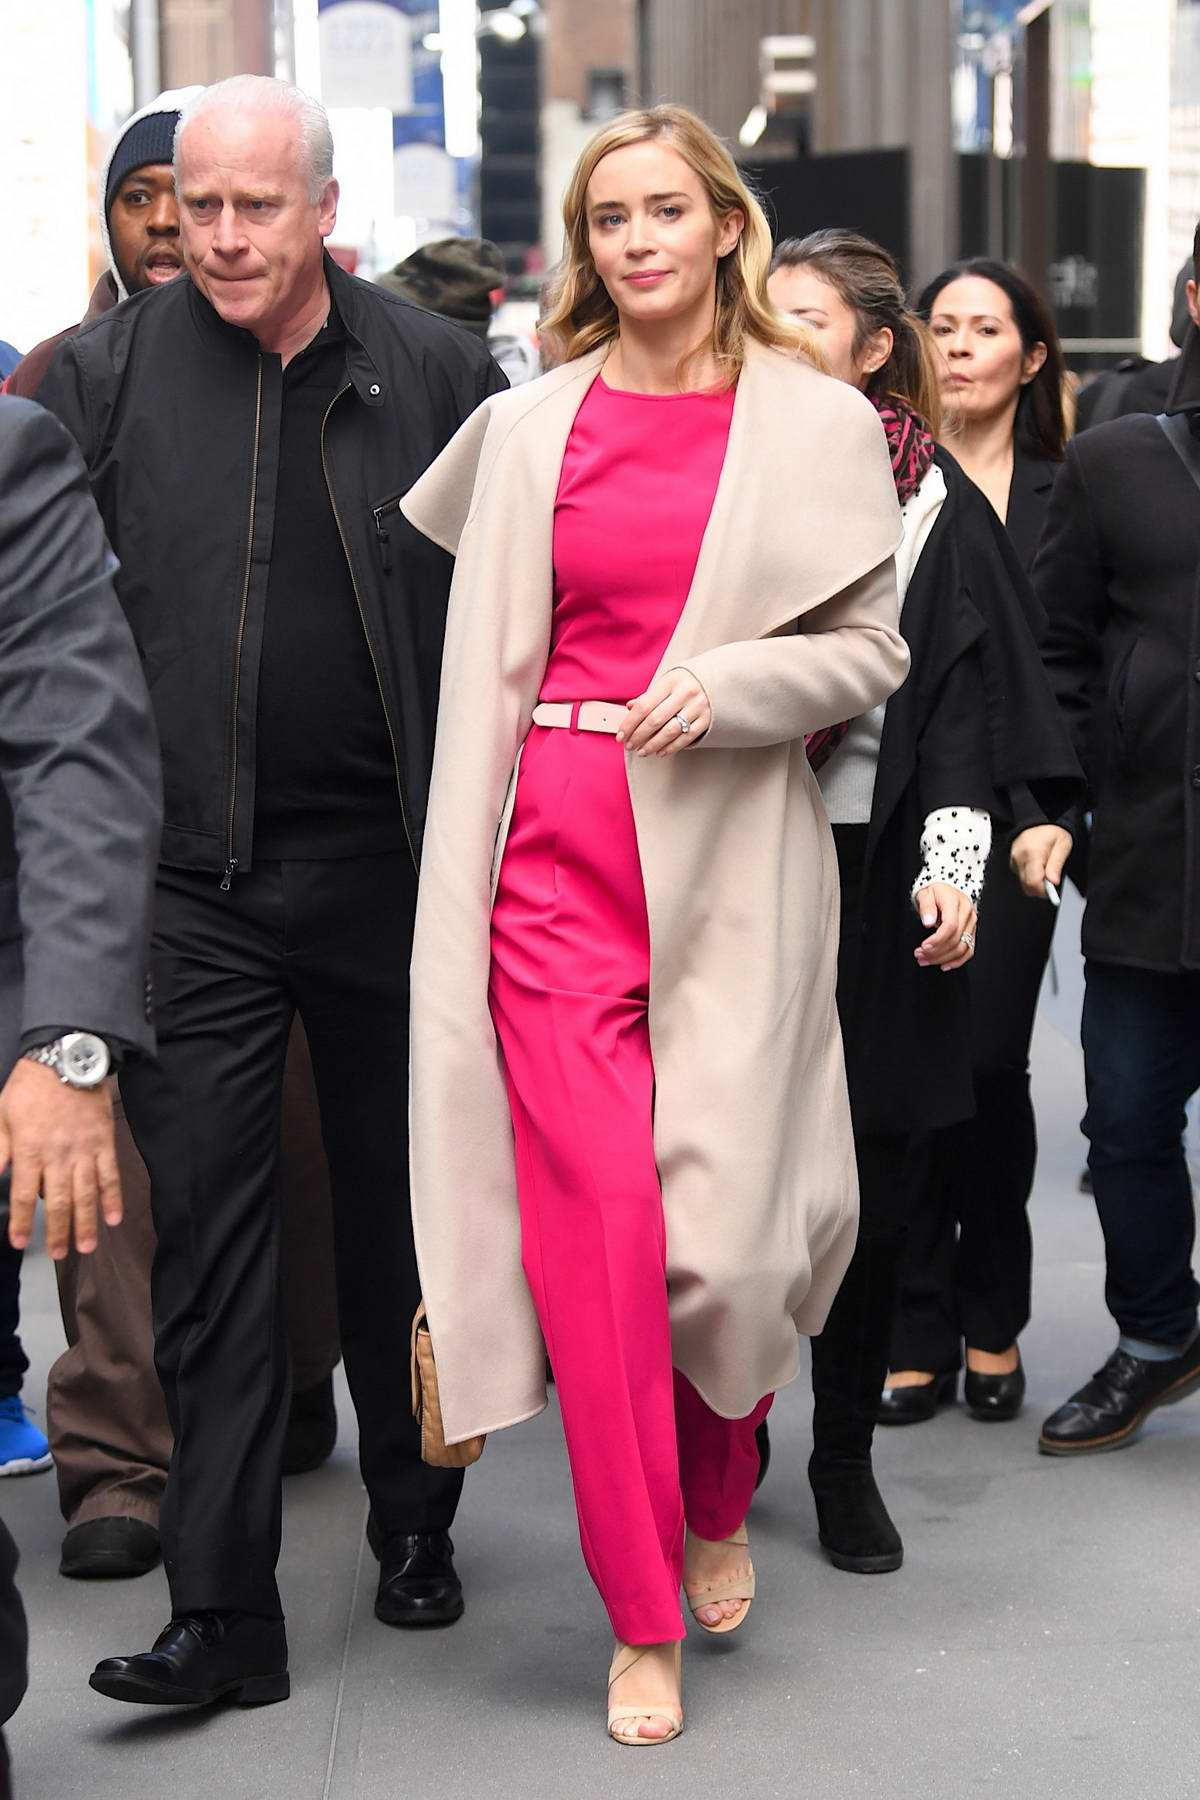 Emily Blunt wore a pink outfit with a beige trench coat while visiting SiriusXM Radio Studios in New York City